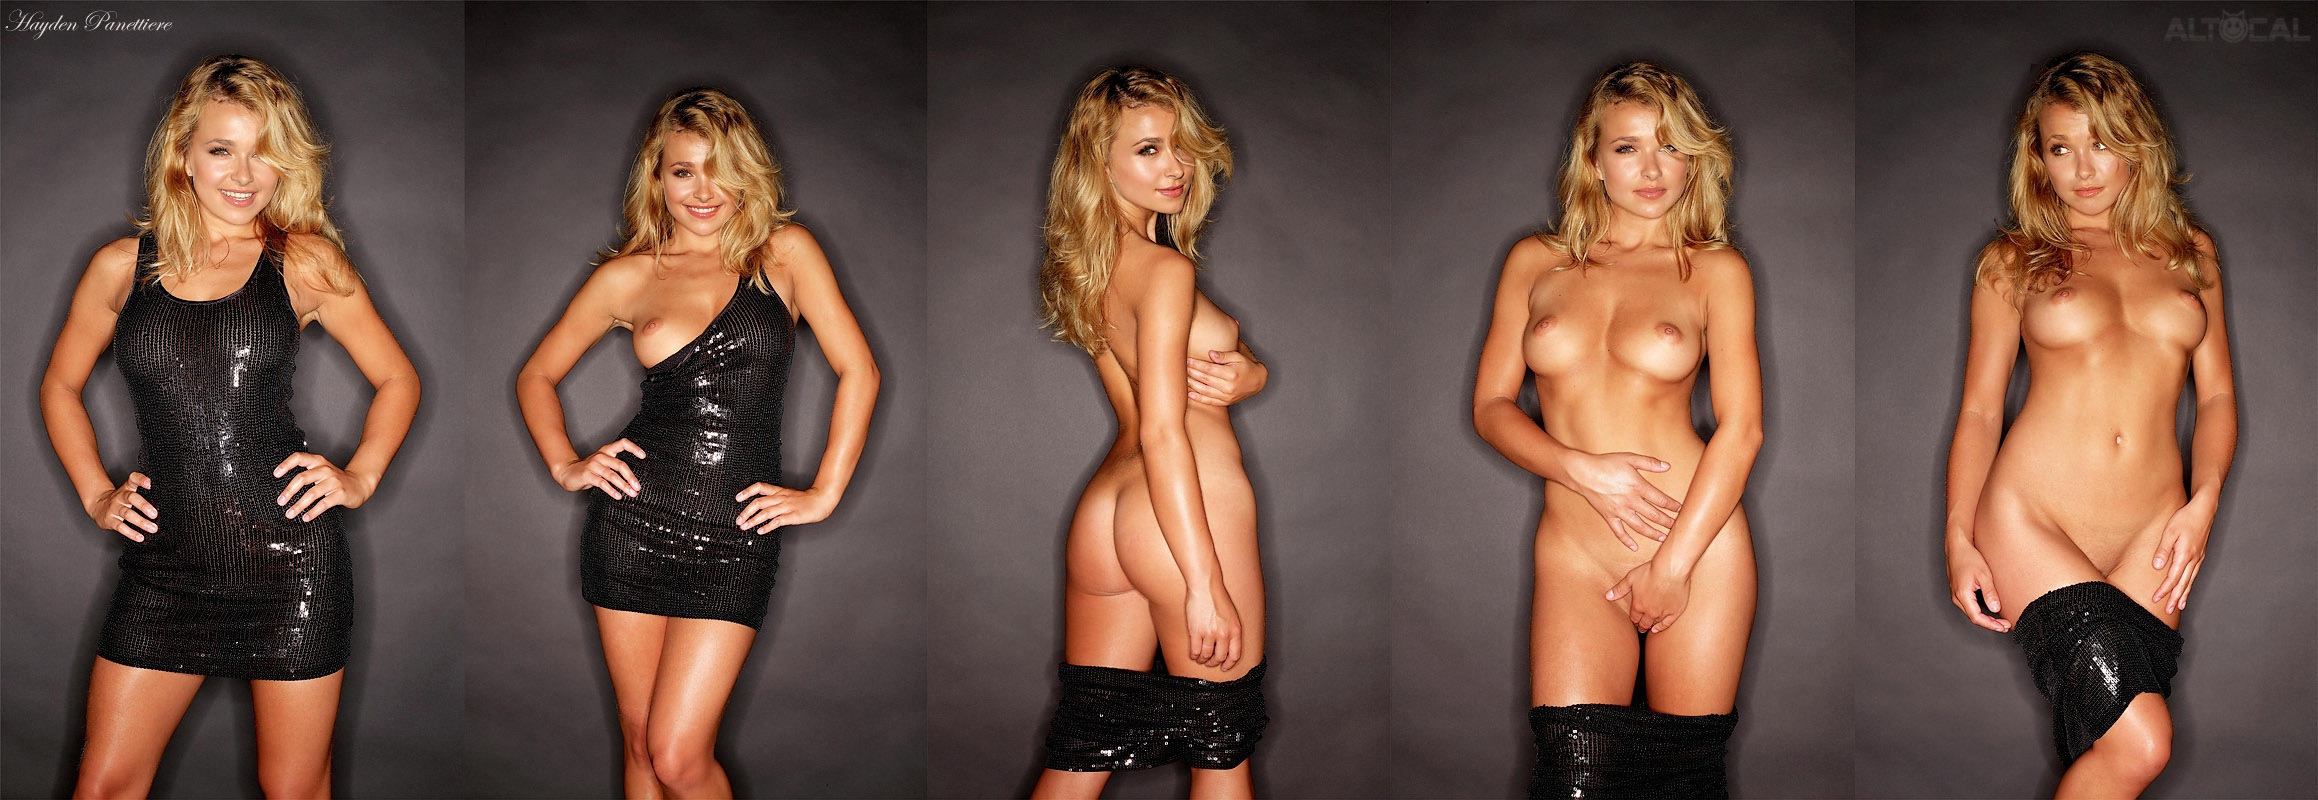 Country women singers nude